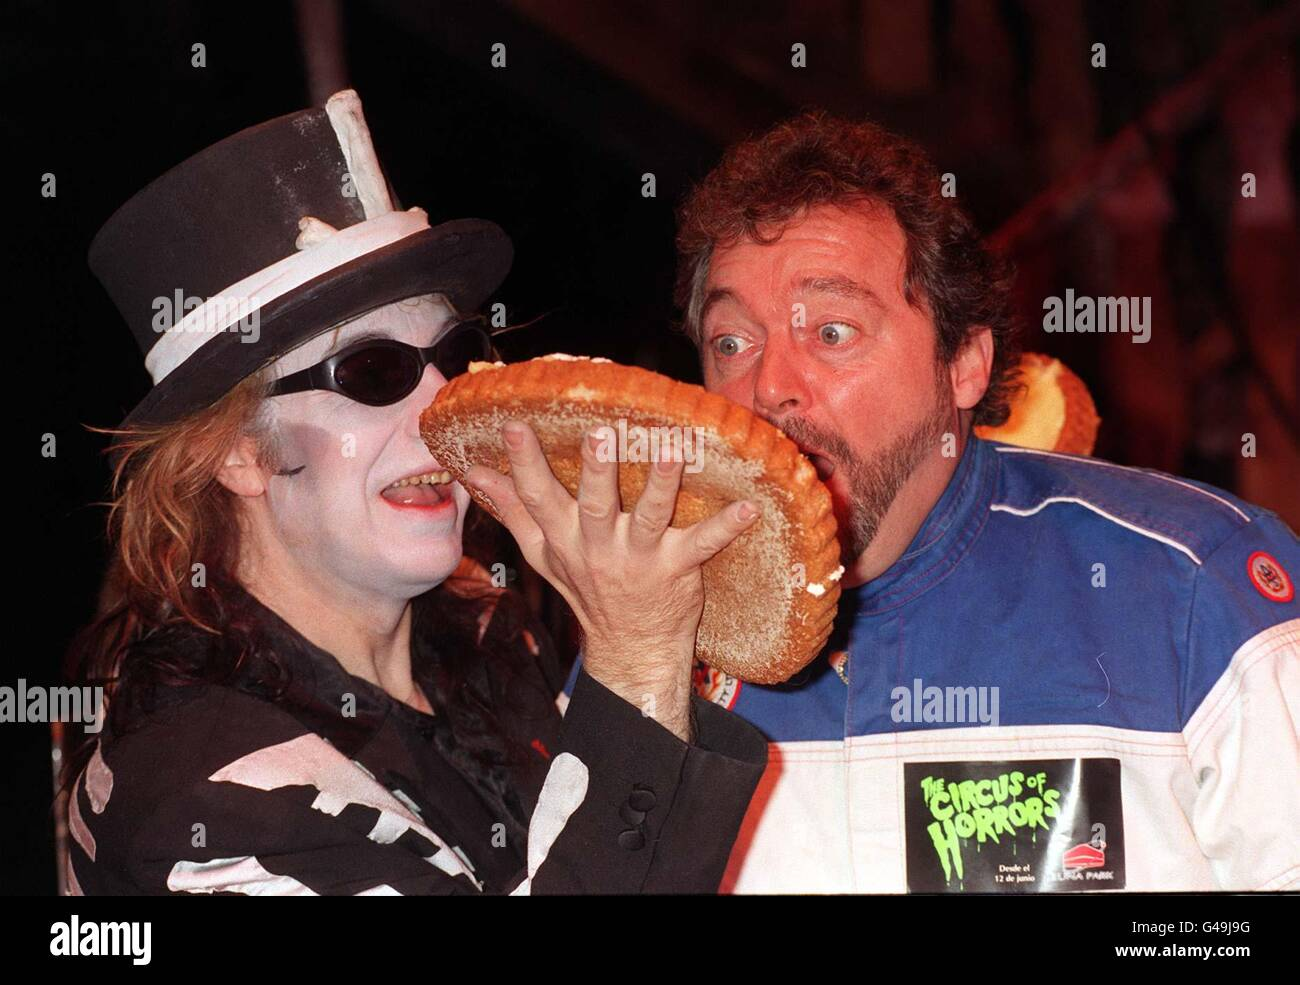 BEADLE/pie in face - Stock Image